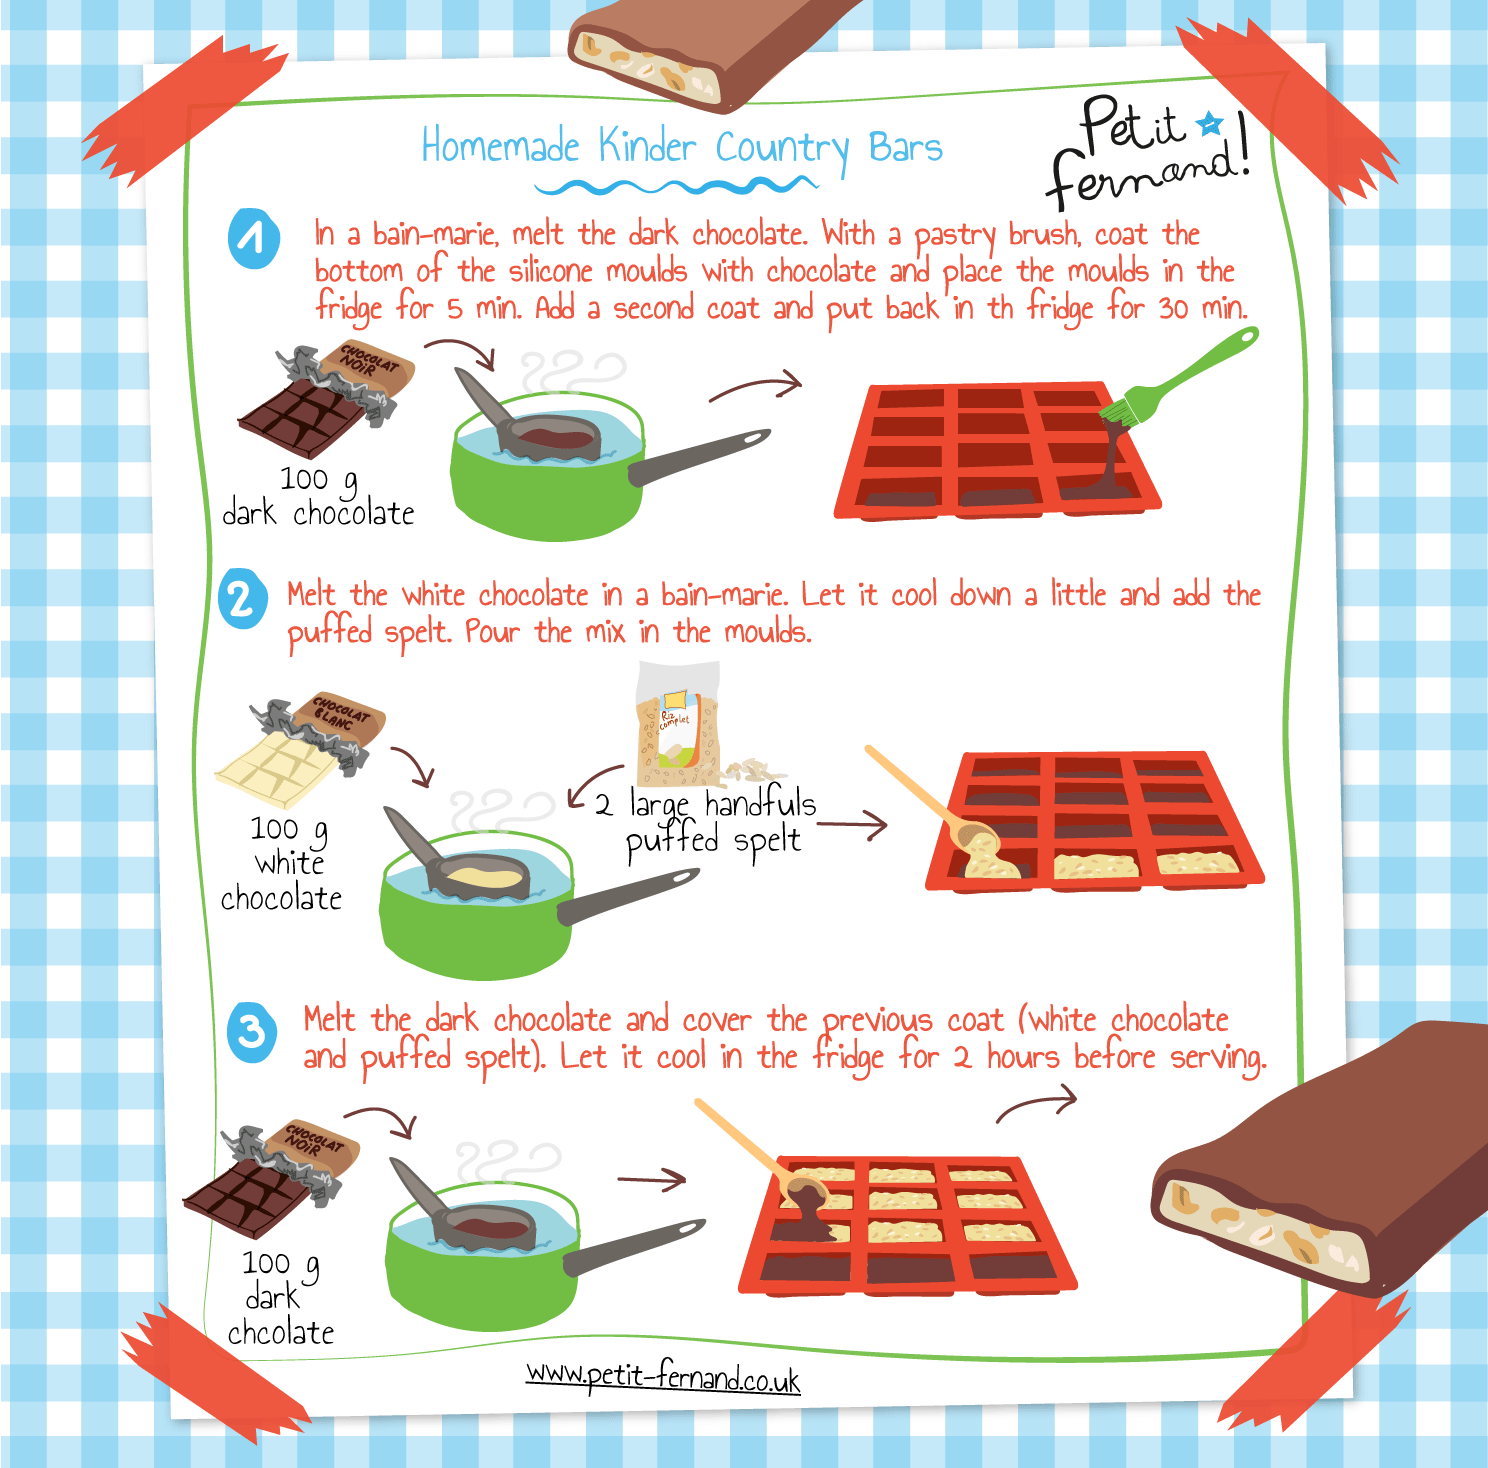 Kids' Kinder Country recipe